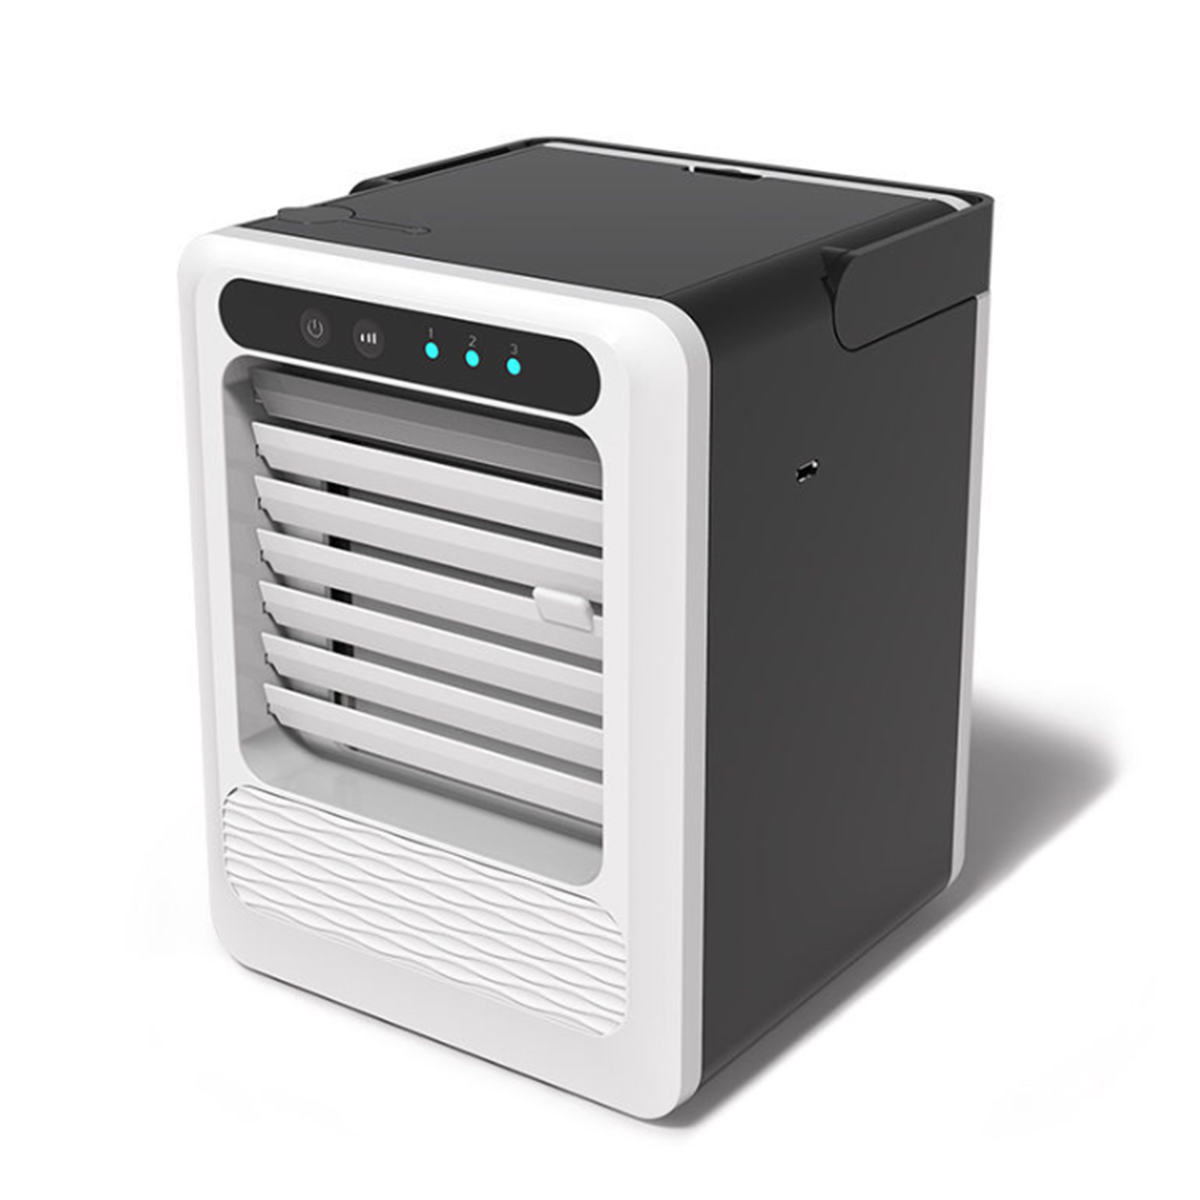 Portable Air Conditioner Mini USB Air Cooler Fan Cooling Humidifier 3 Gear Home Room Air Conditioning Quick & Easy Way To Cool